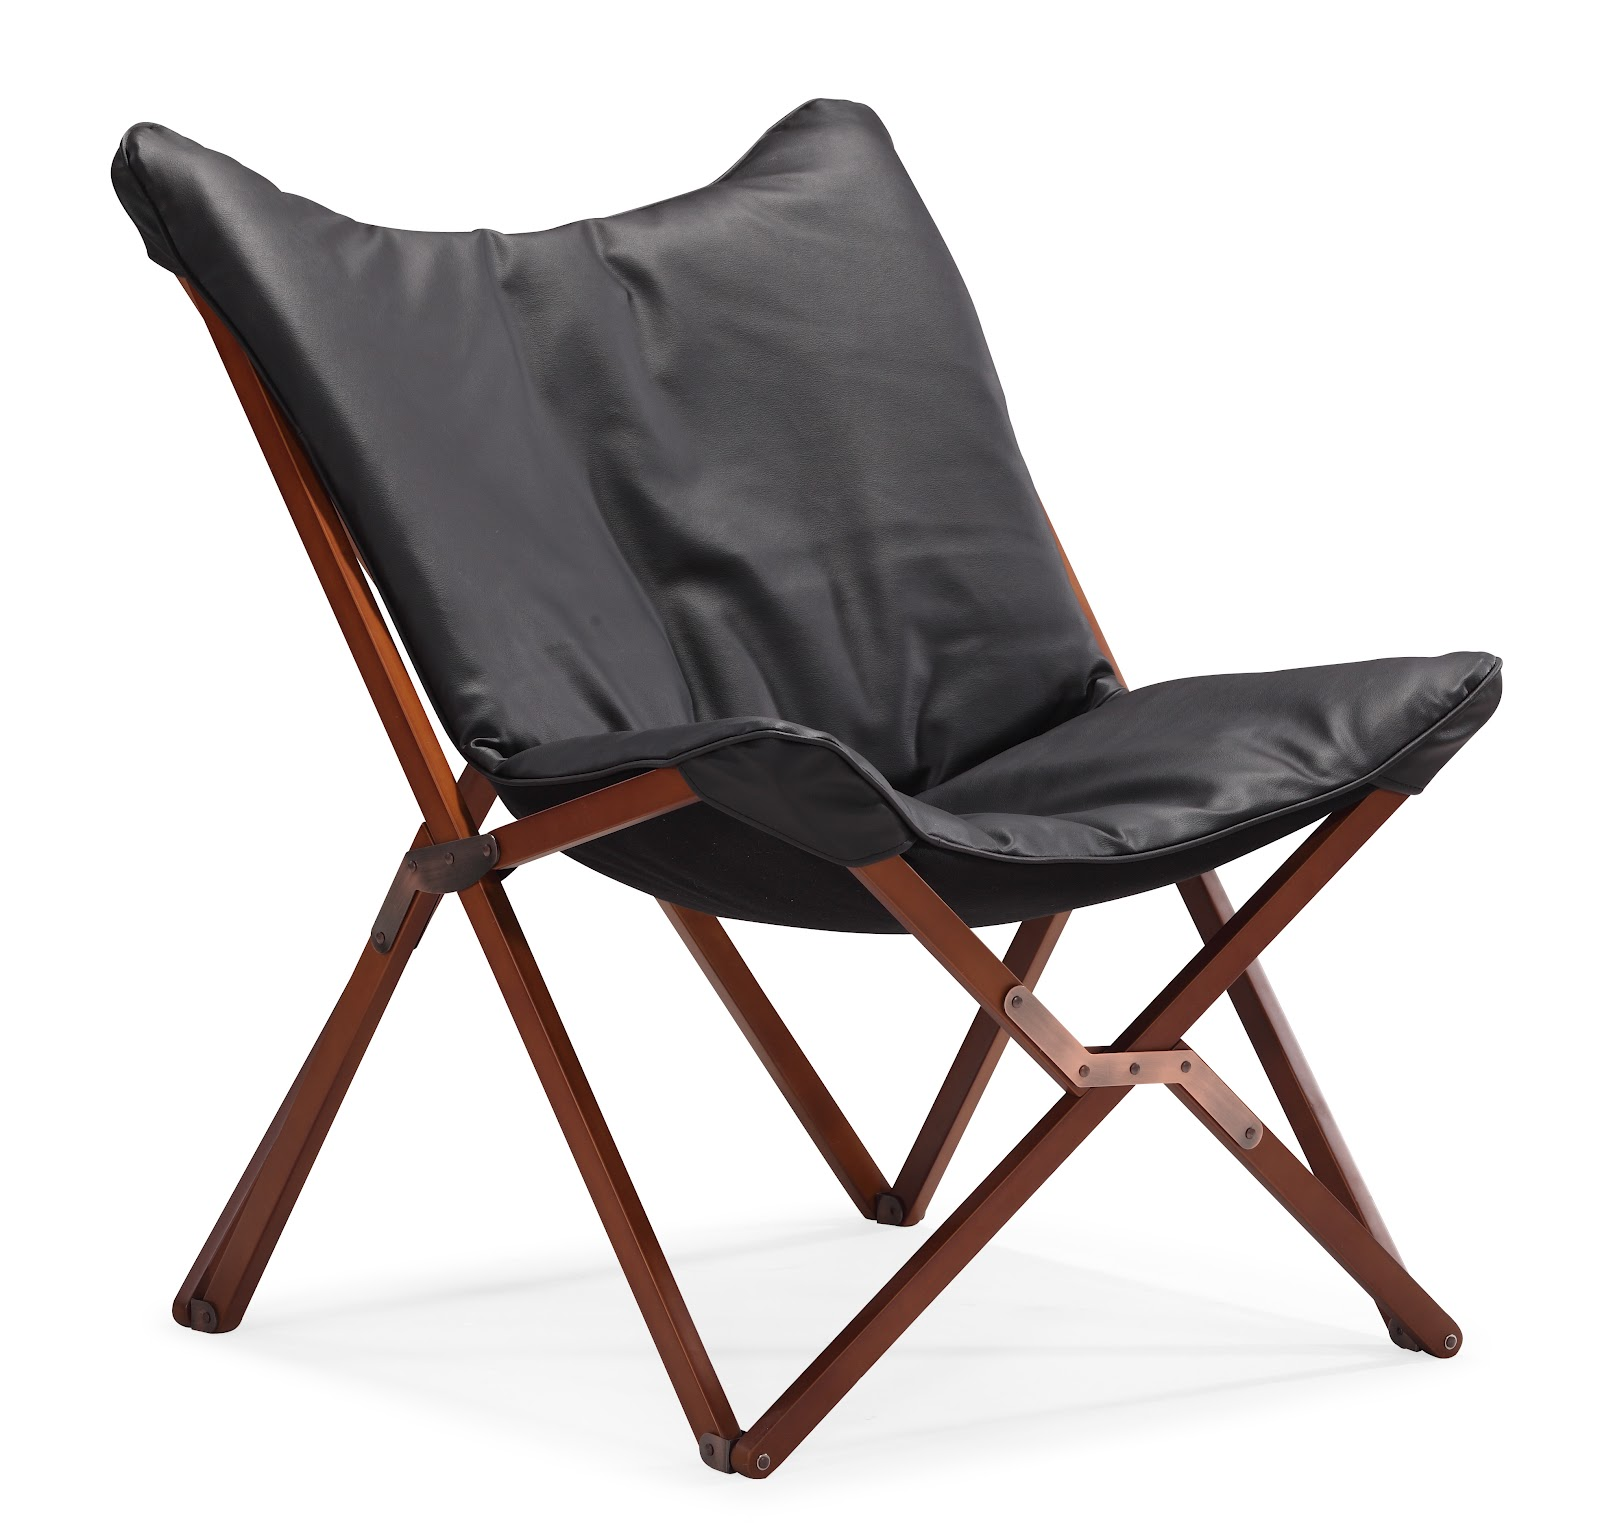 Most Comfortable Lounge Chairs: Comfort To Go